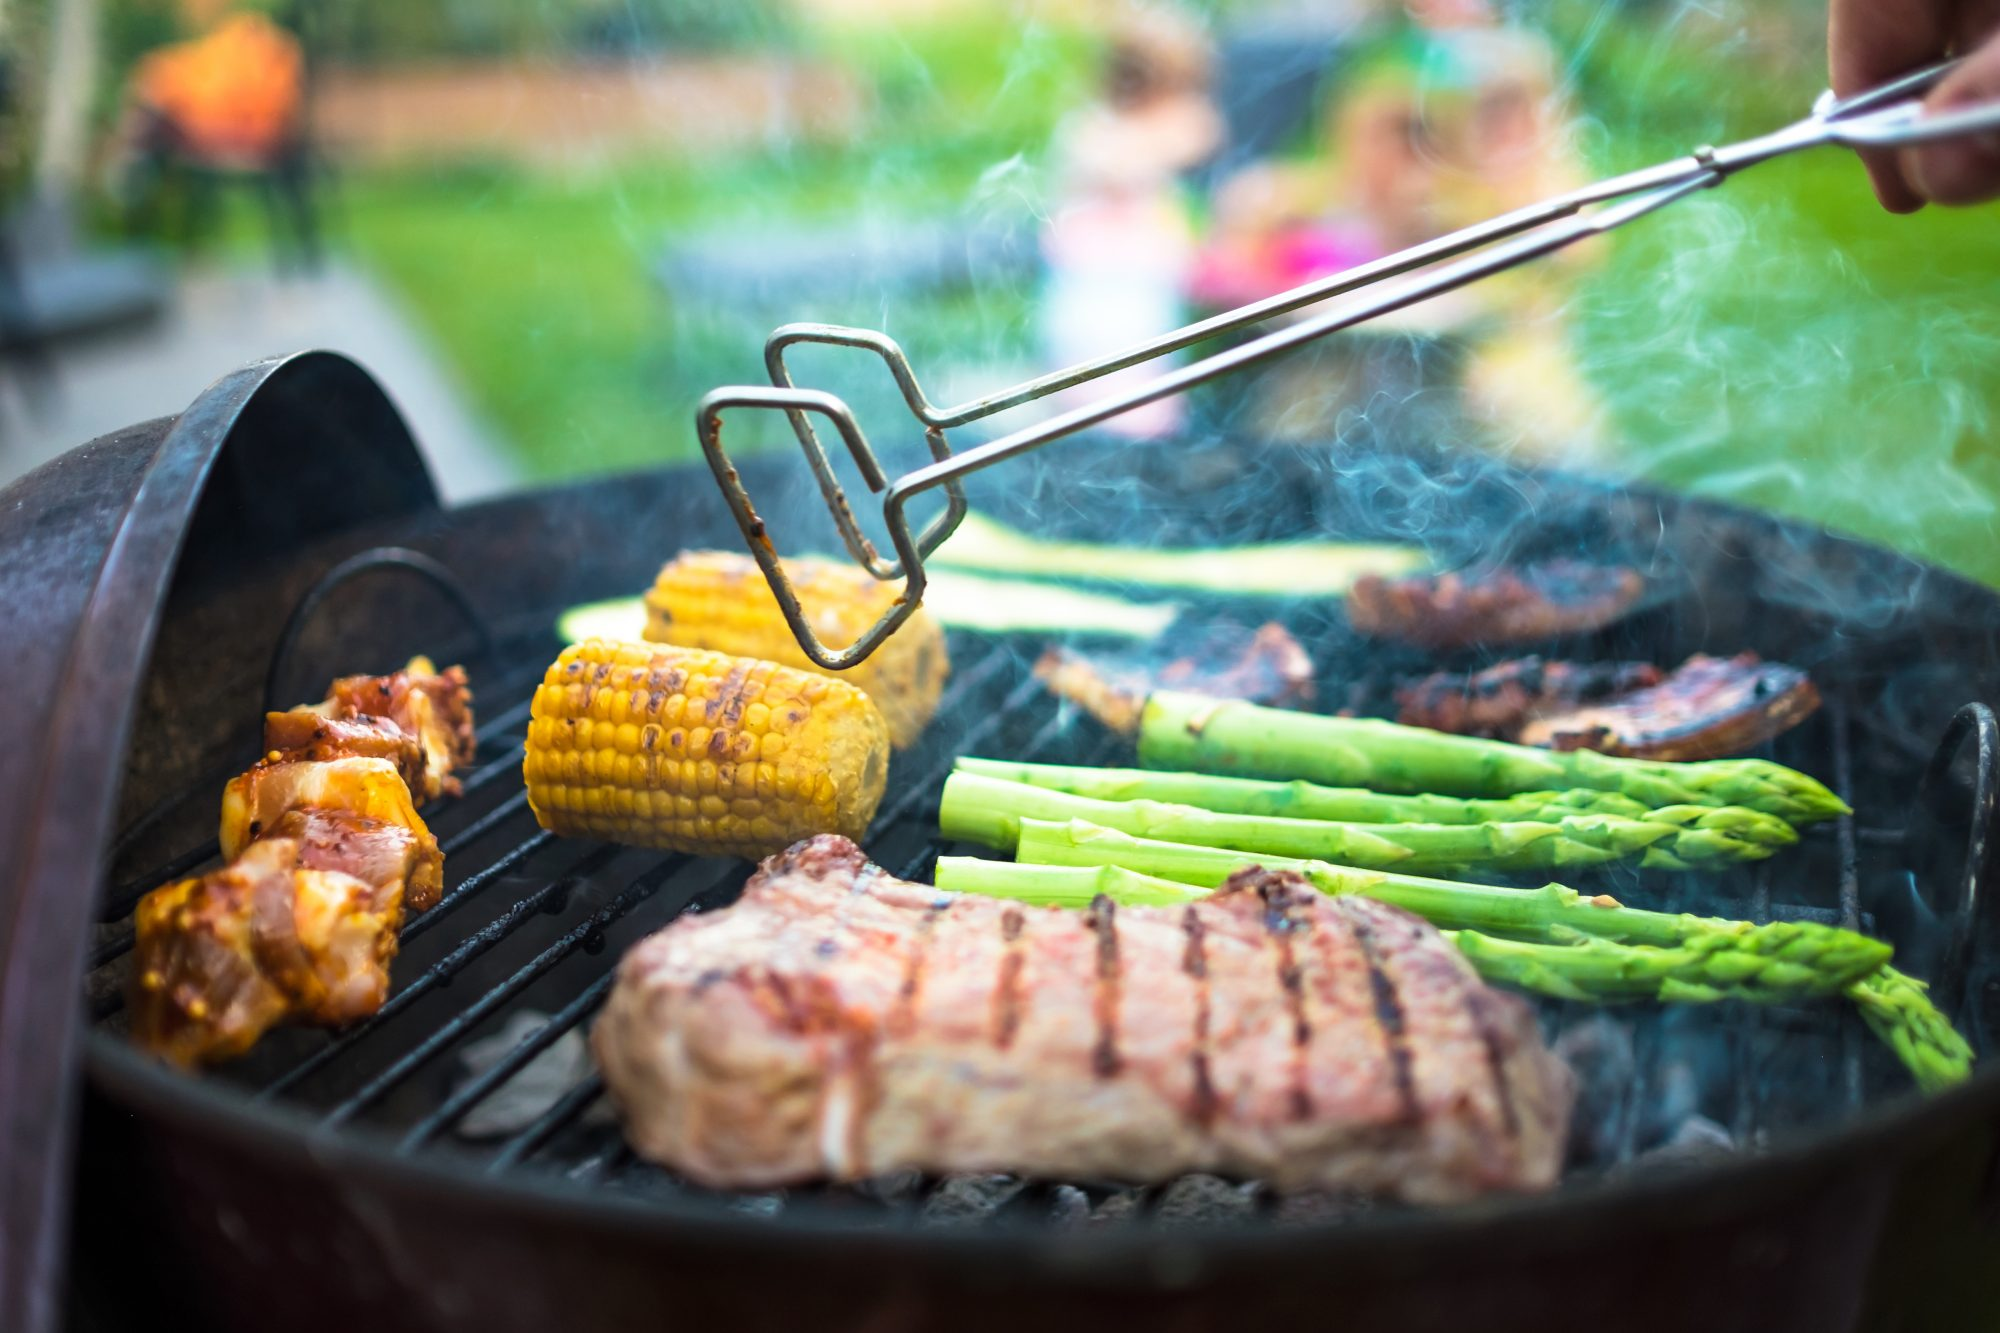 The Best and Worst Foods at a Summer Barbecue